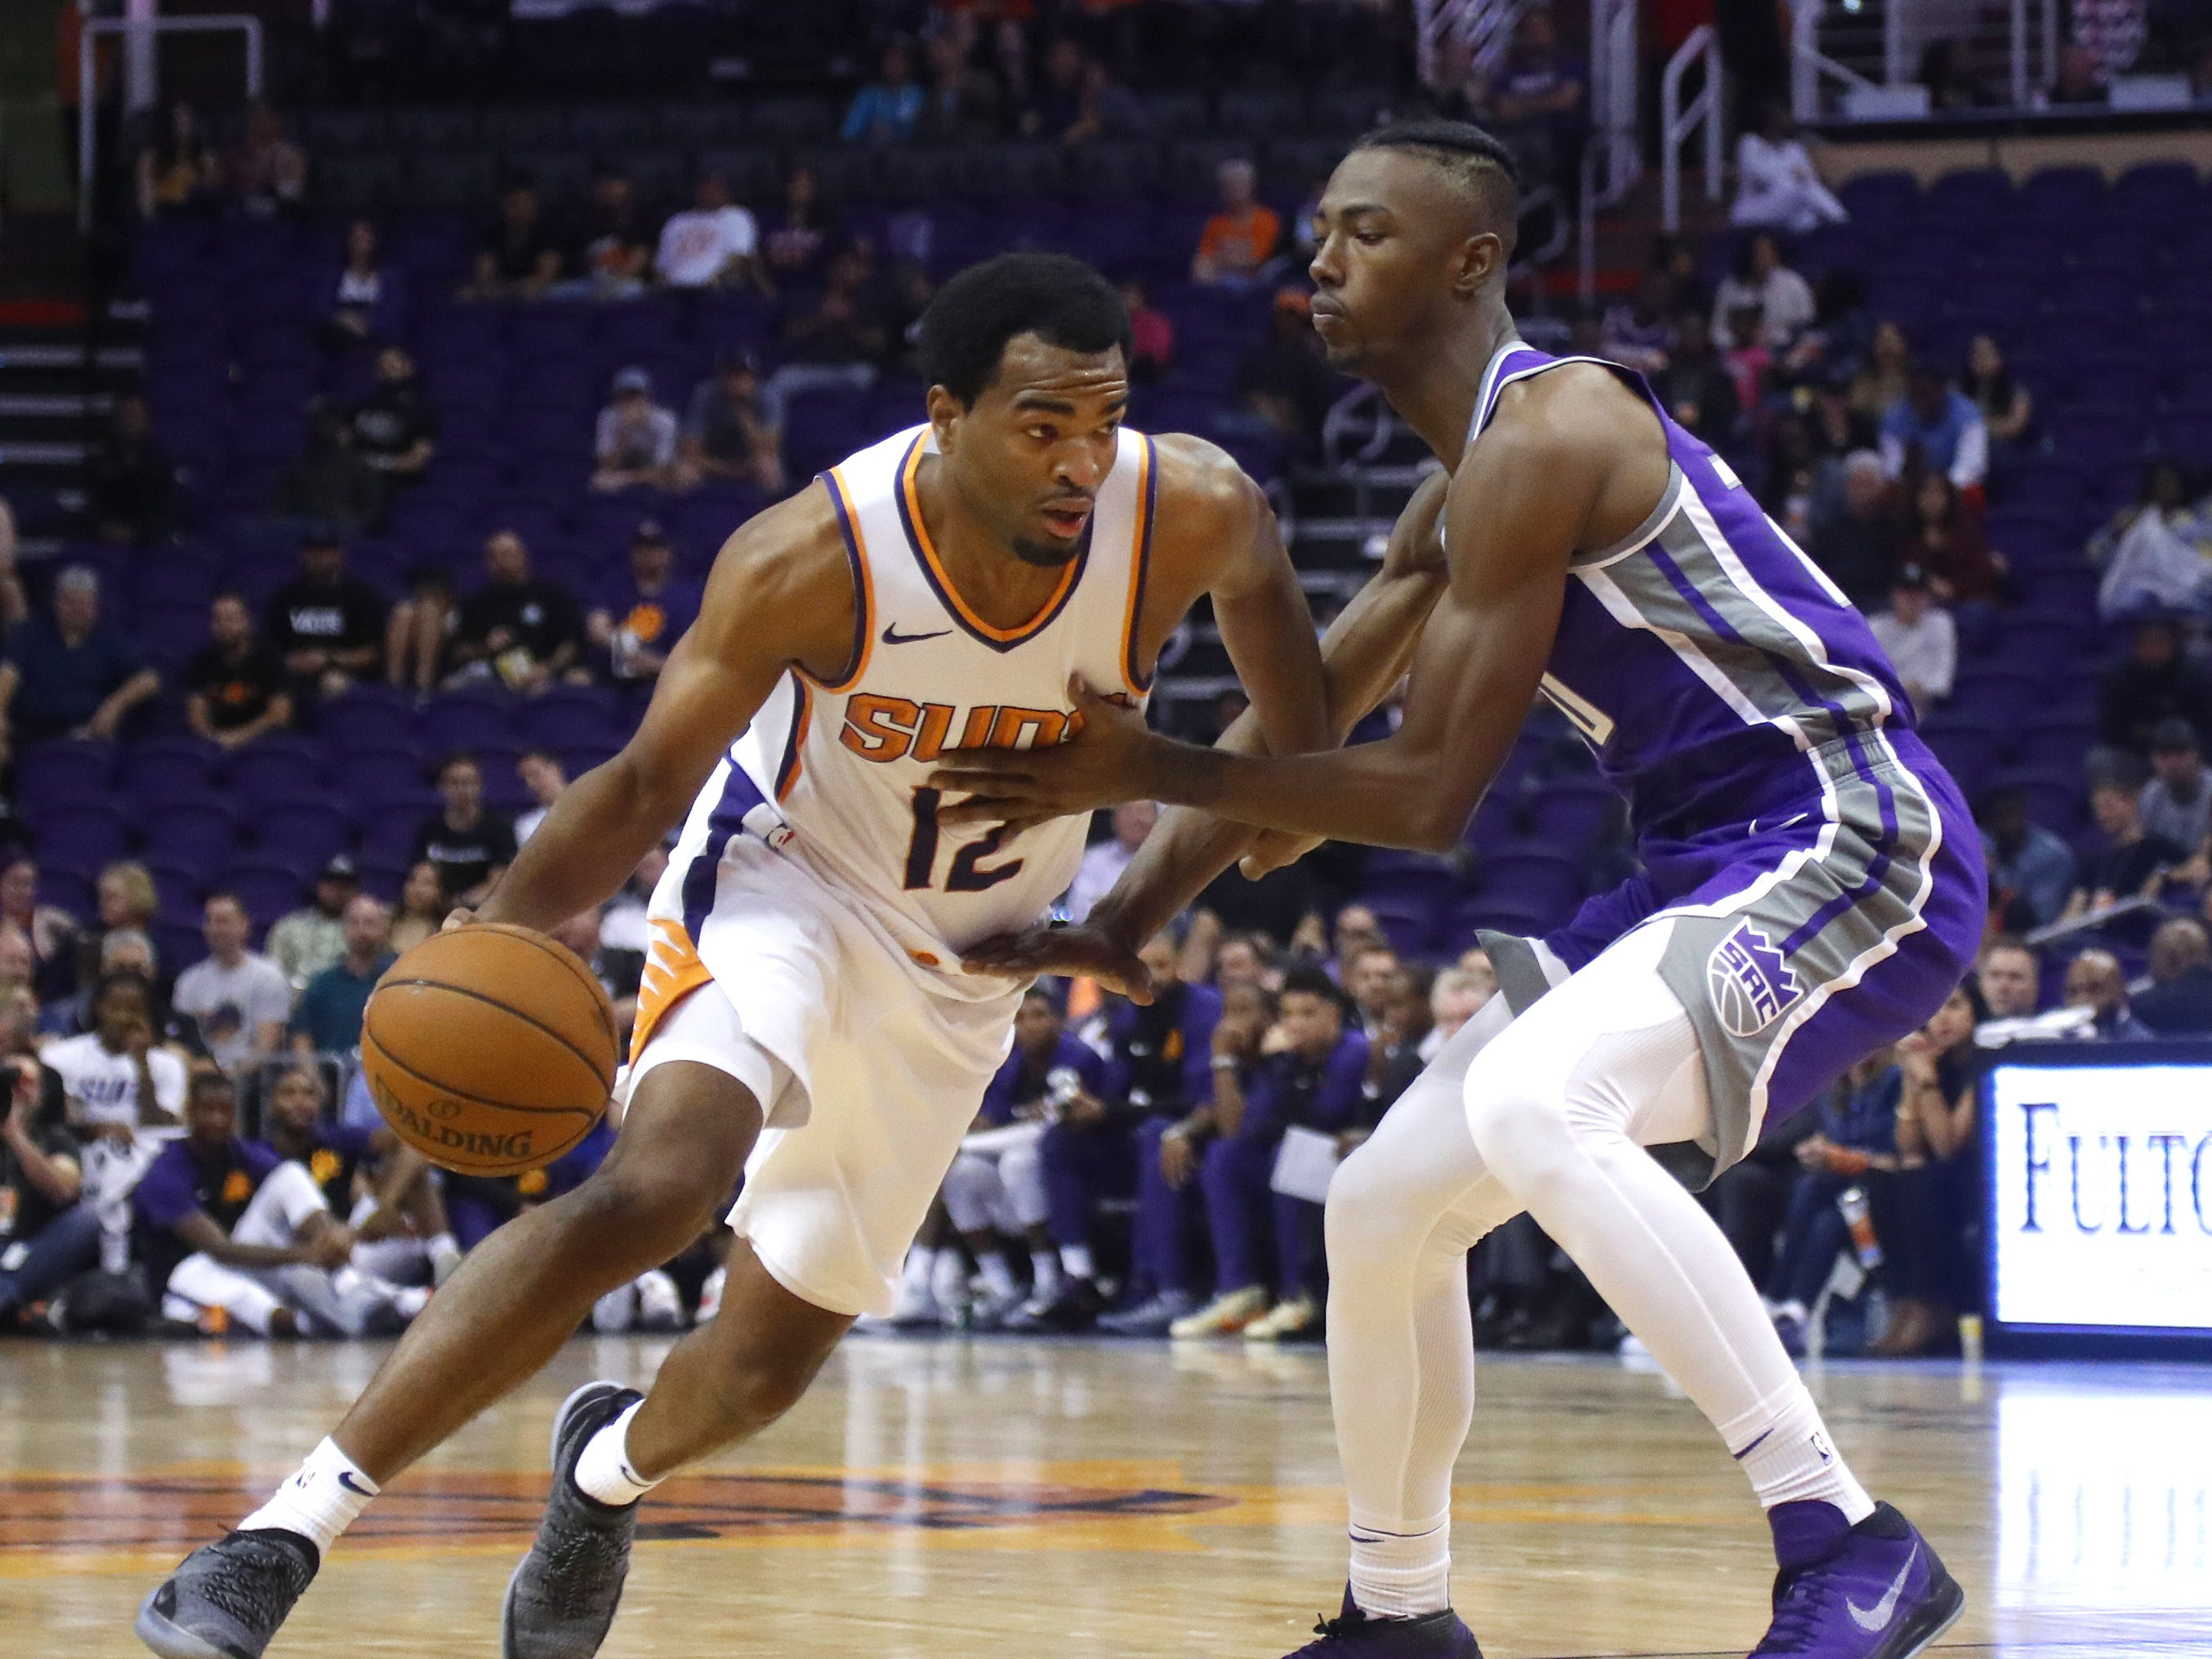 Suns' T.J. Warren (12) drives against Kings' Harry Giles III (20) during the second half at Talking Stick Resort Arena in Phoenix, Ariz. on October 1, 2018.